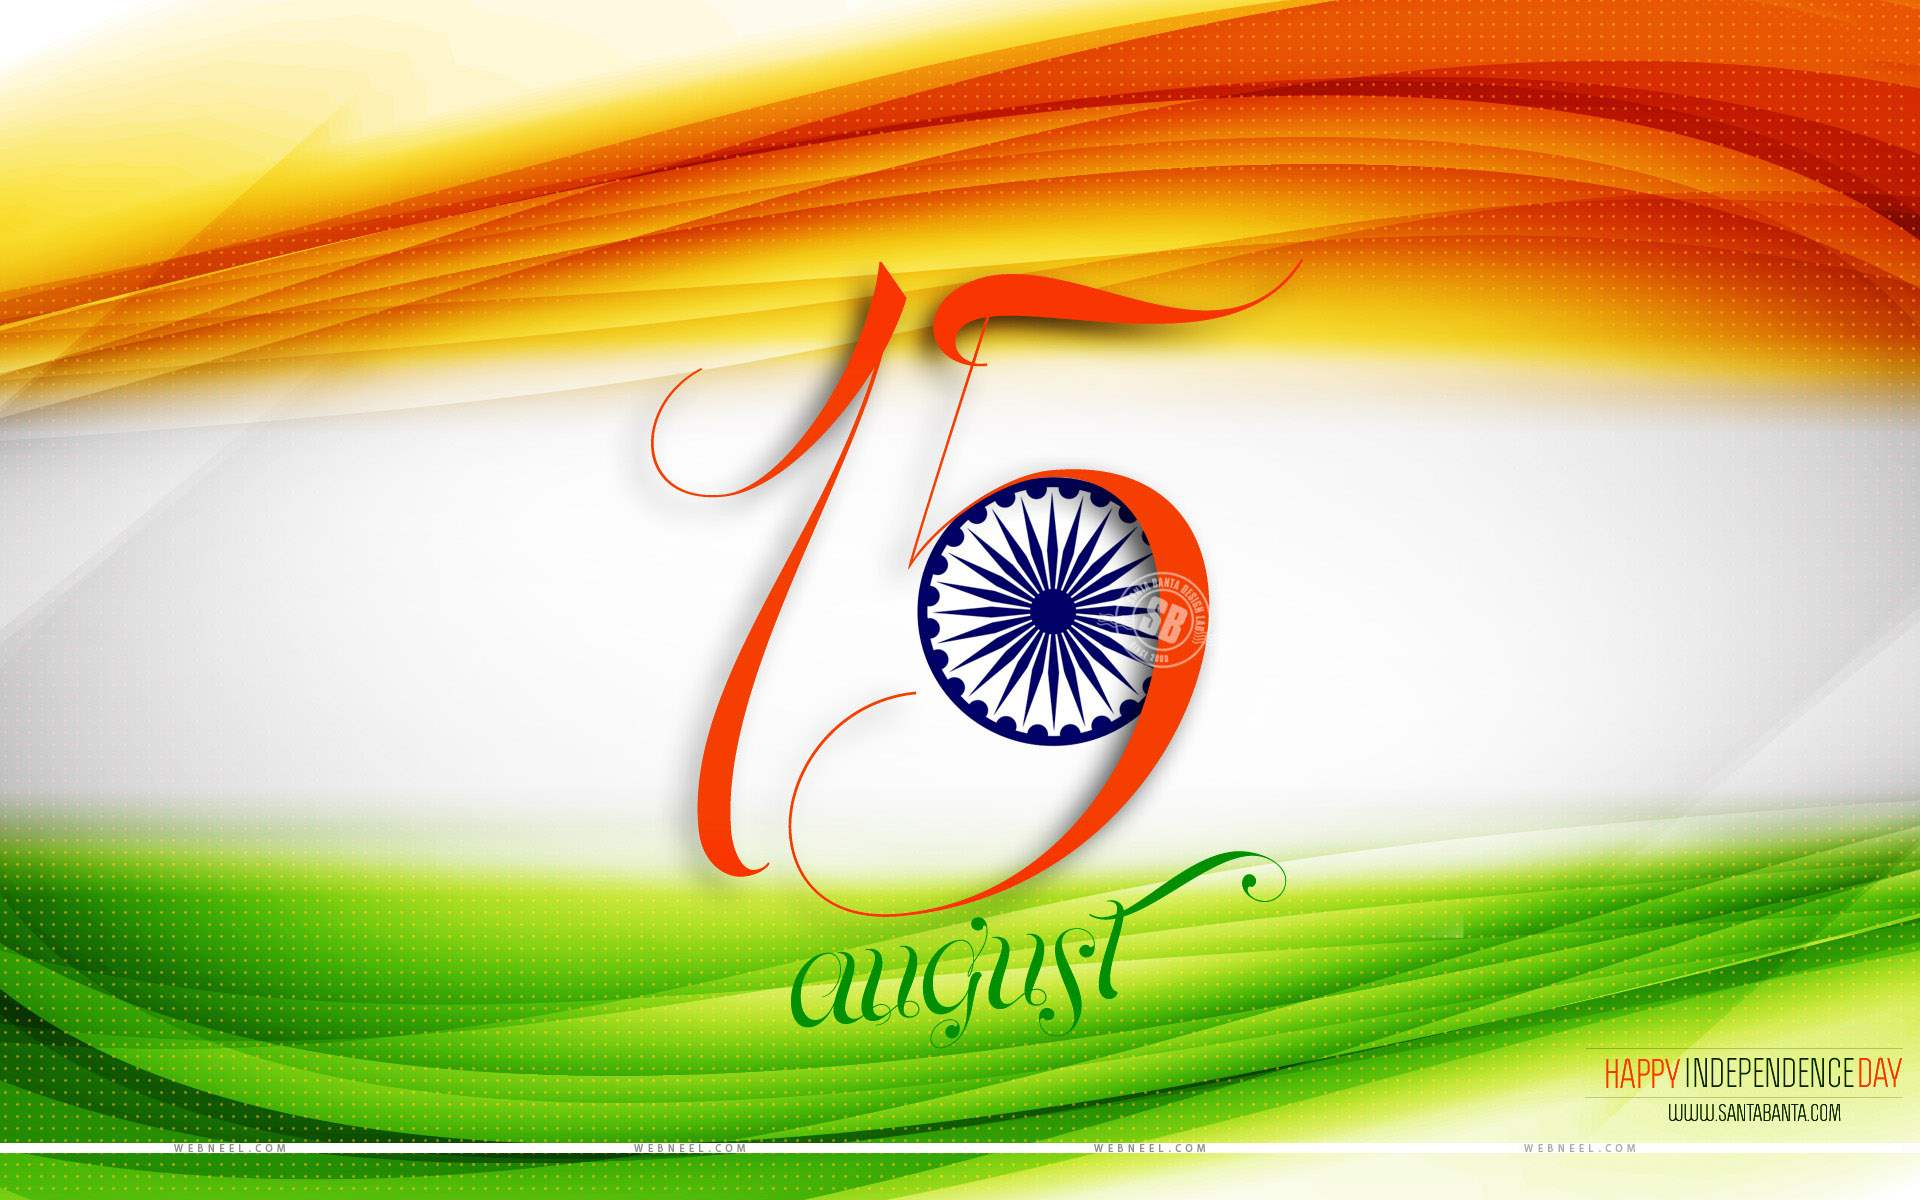 Independence Day Mobile Wallpapers: India Independence Day HD Wallpapers 2015 And Messages